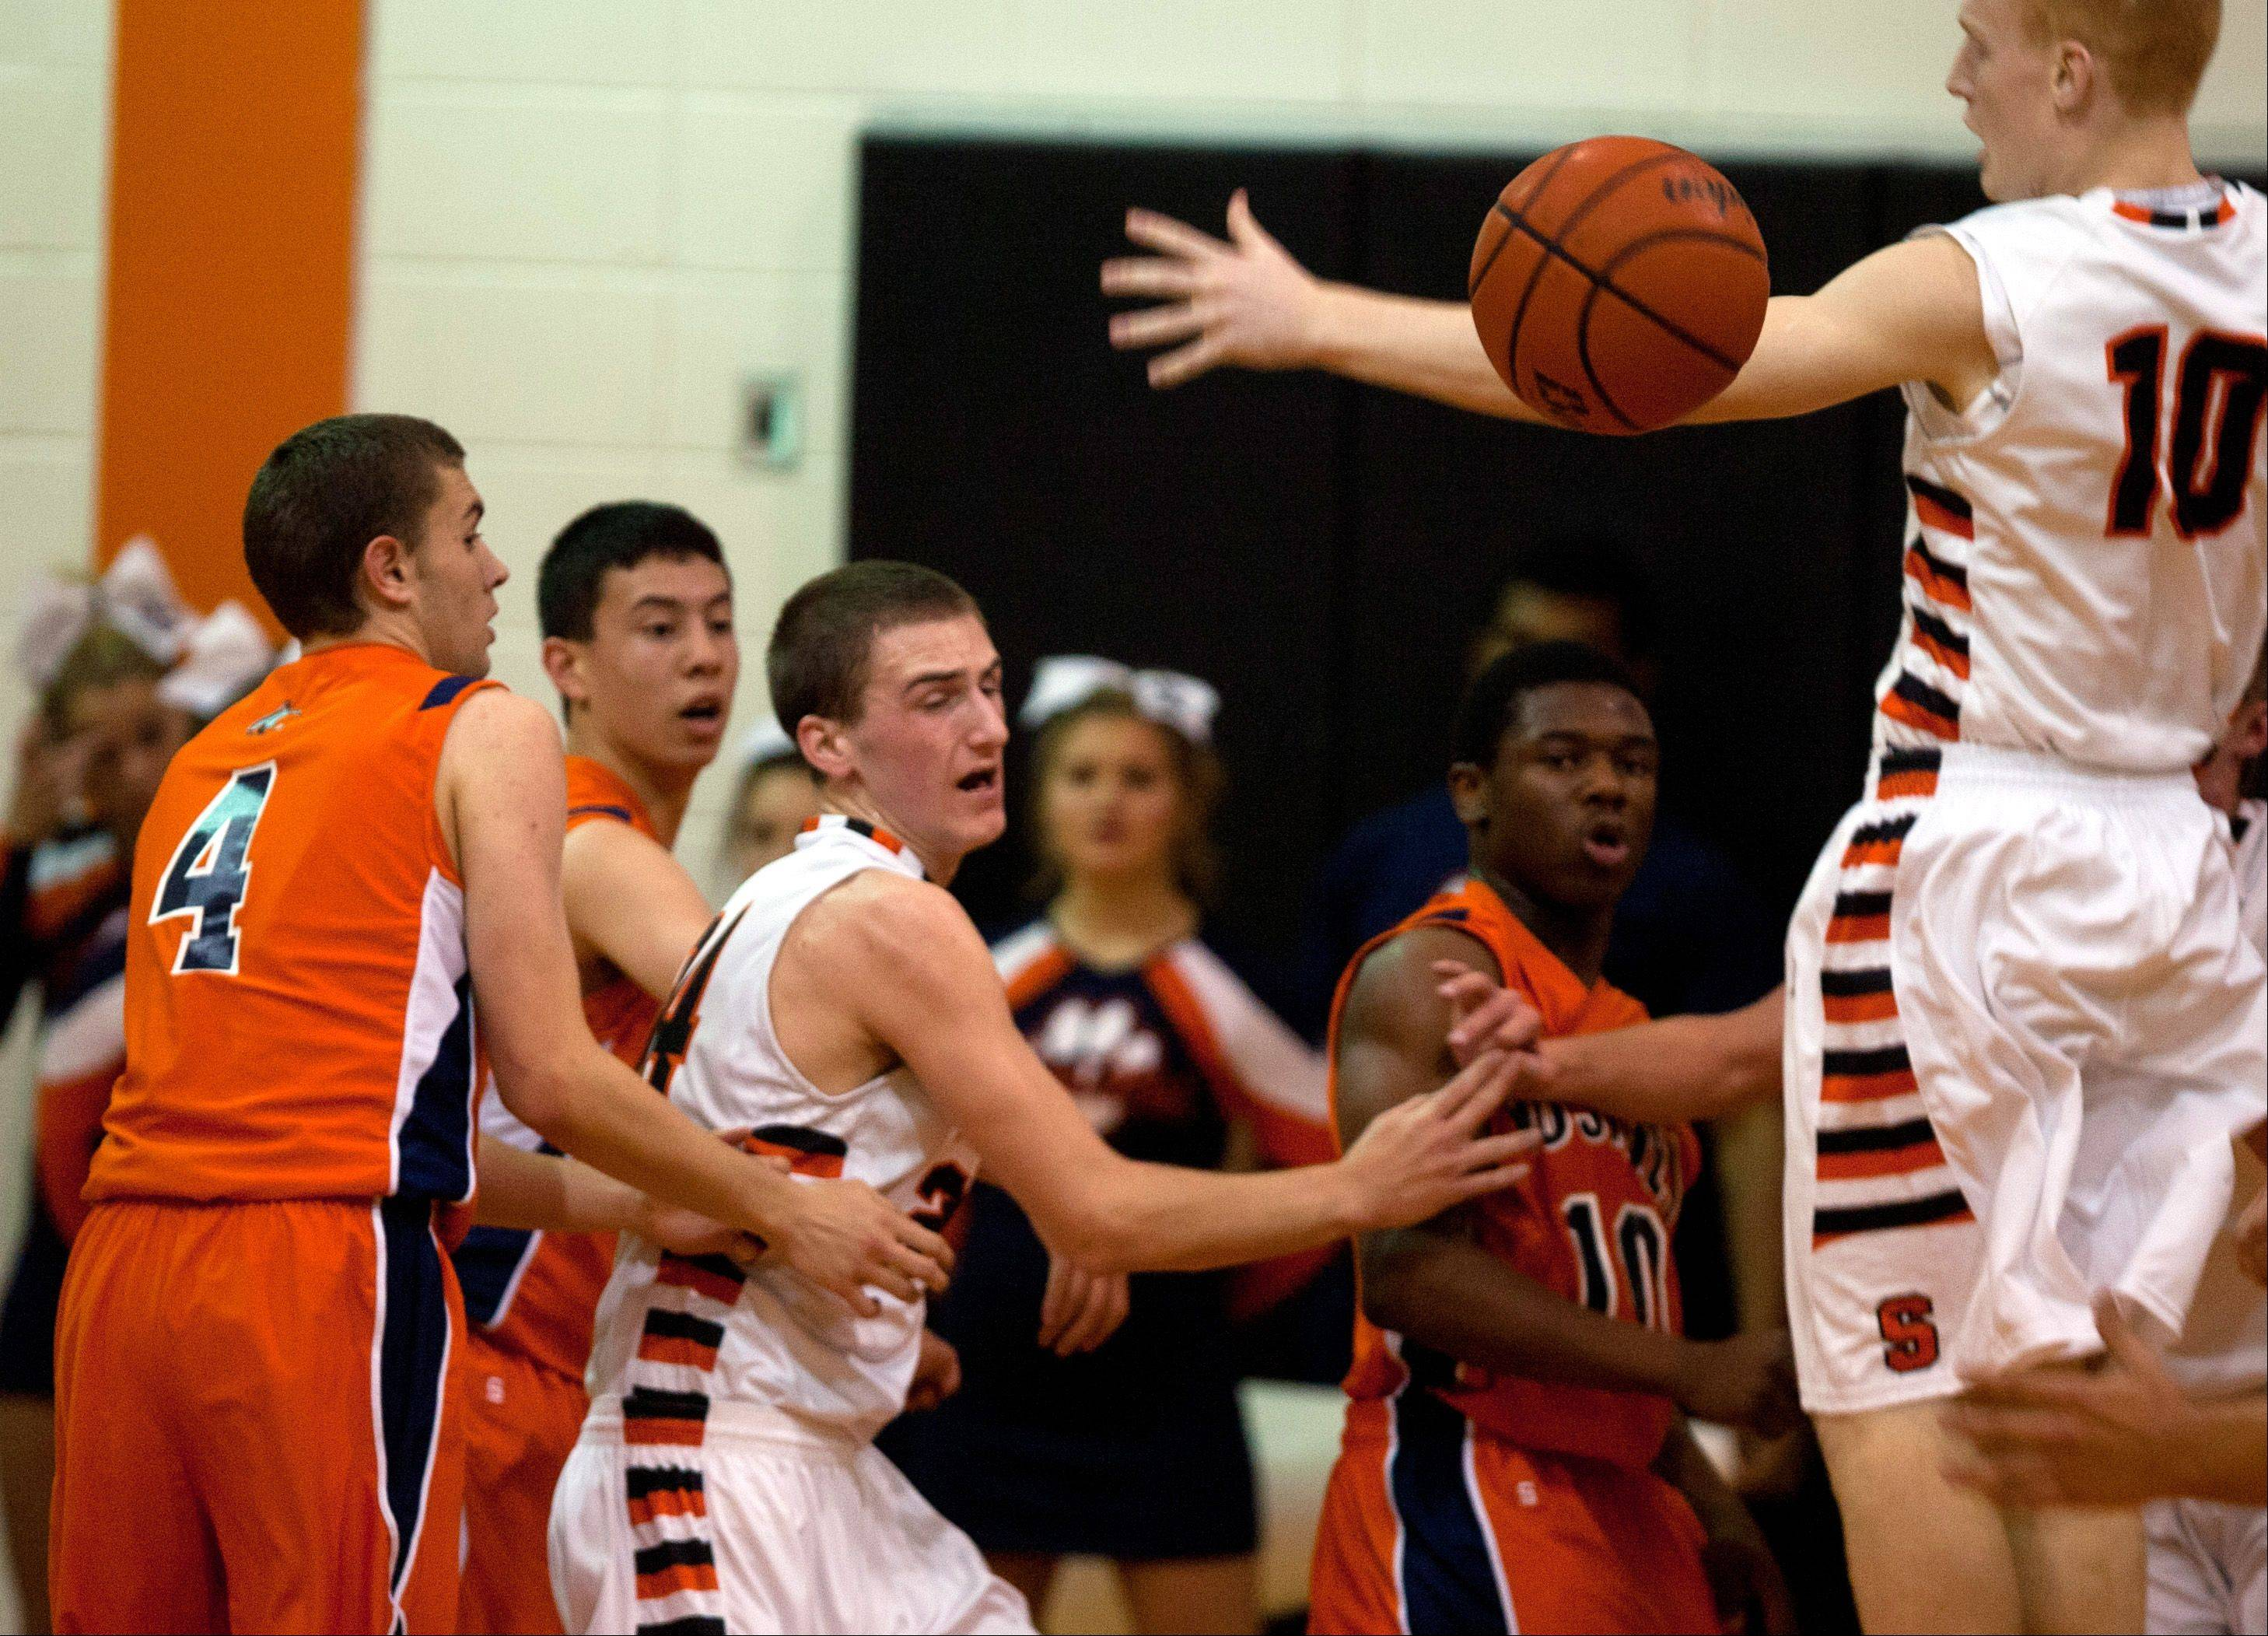 Wheaton Warrenville South's Ryan Graham (10), looks to block a pass against Naperville North during boys basketball action in Wheaton.